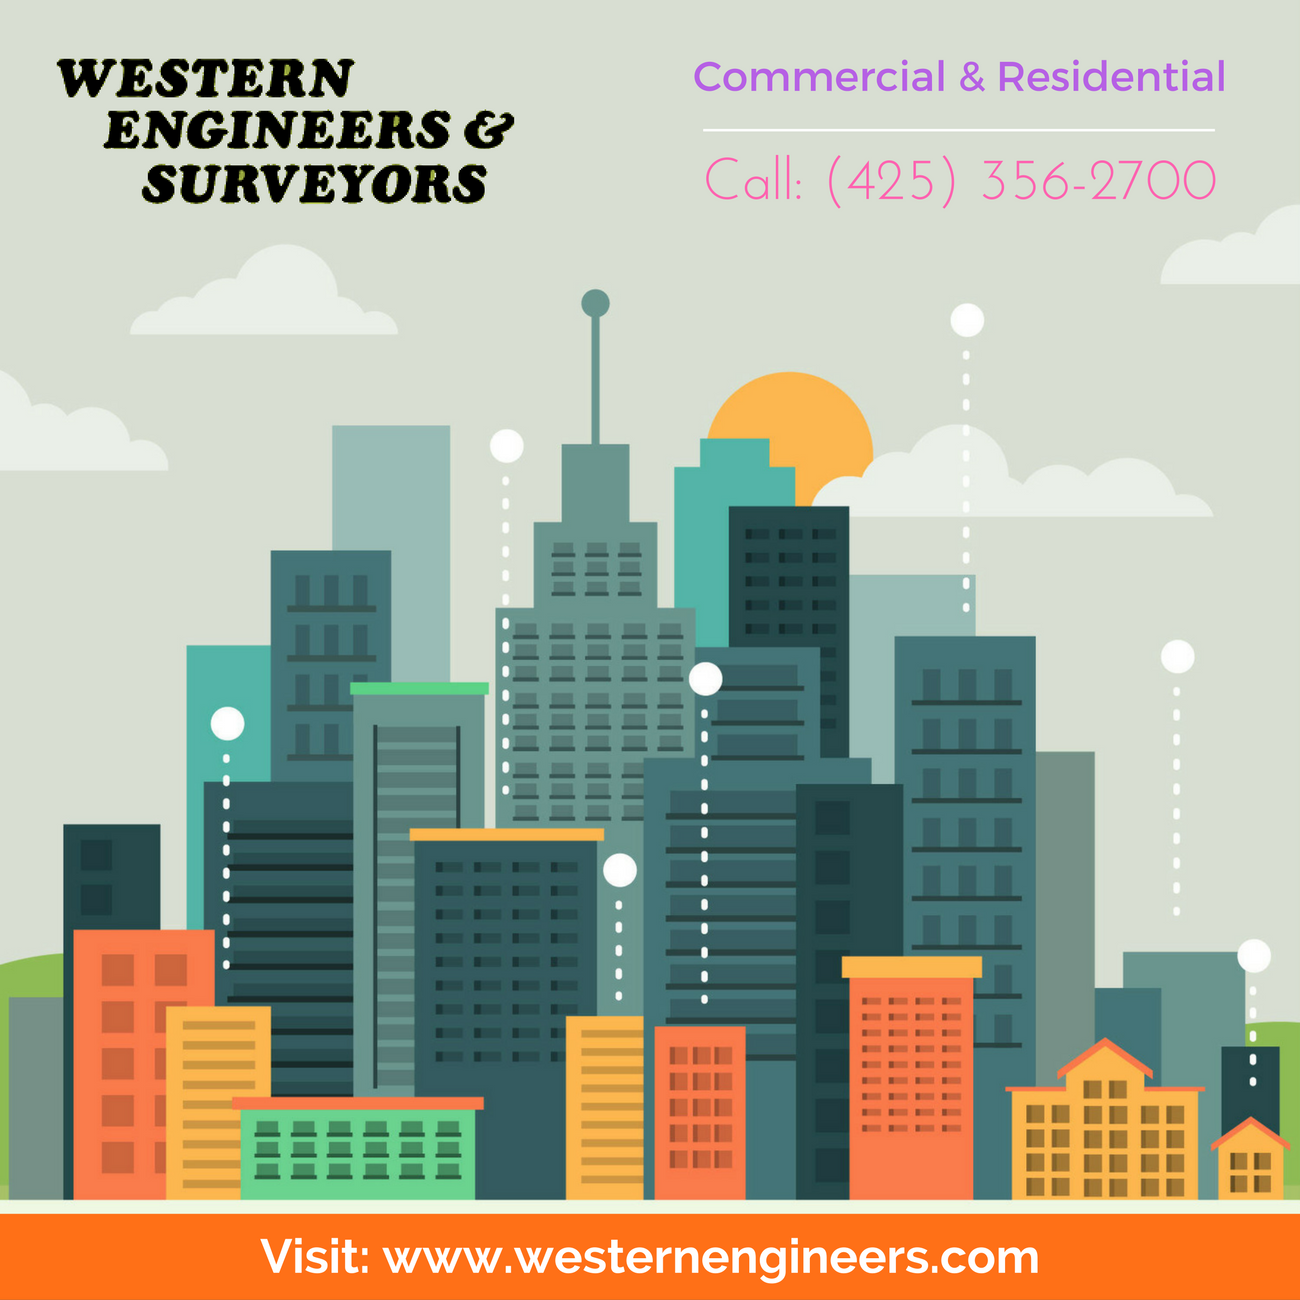 Western Engineers and Land Surveyors are highly experienced in Commercial & Residential Land Surveying. We have advanced land survey equipment's for making accurate measurements. For more info call:(425) 356-2700, Visit: http://westernengineers.com